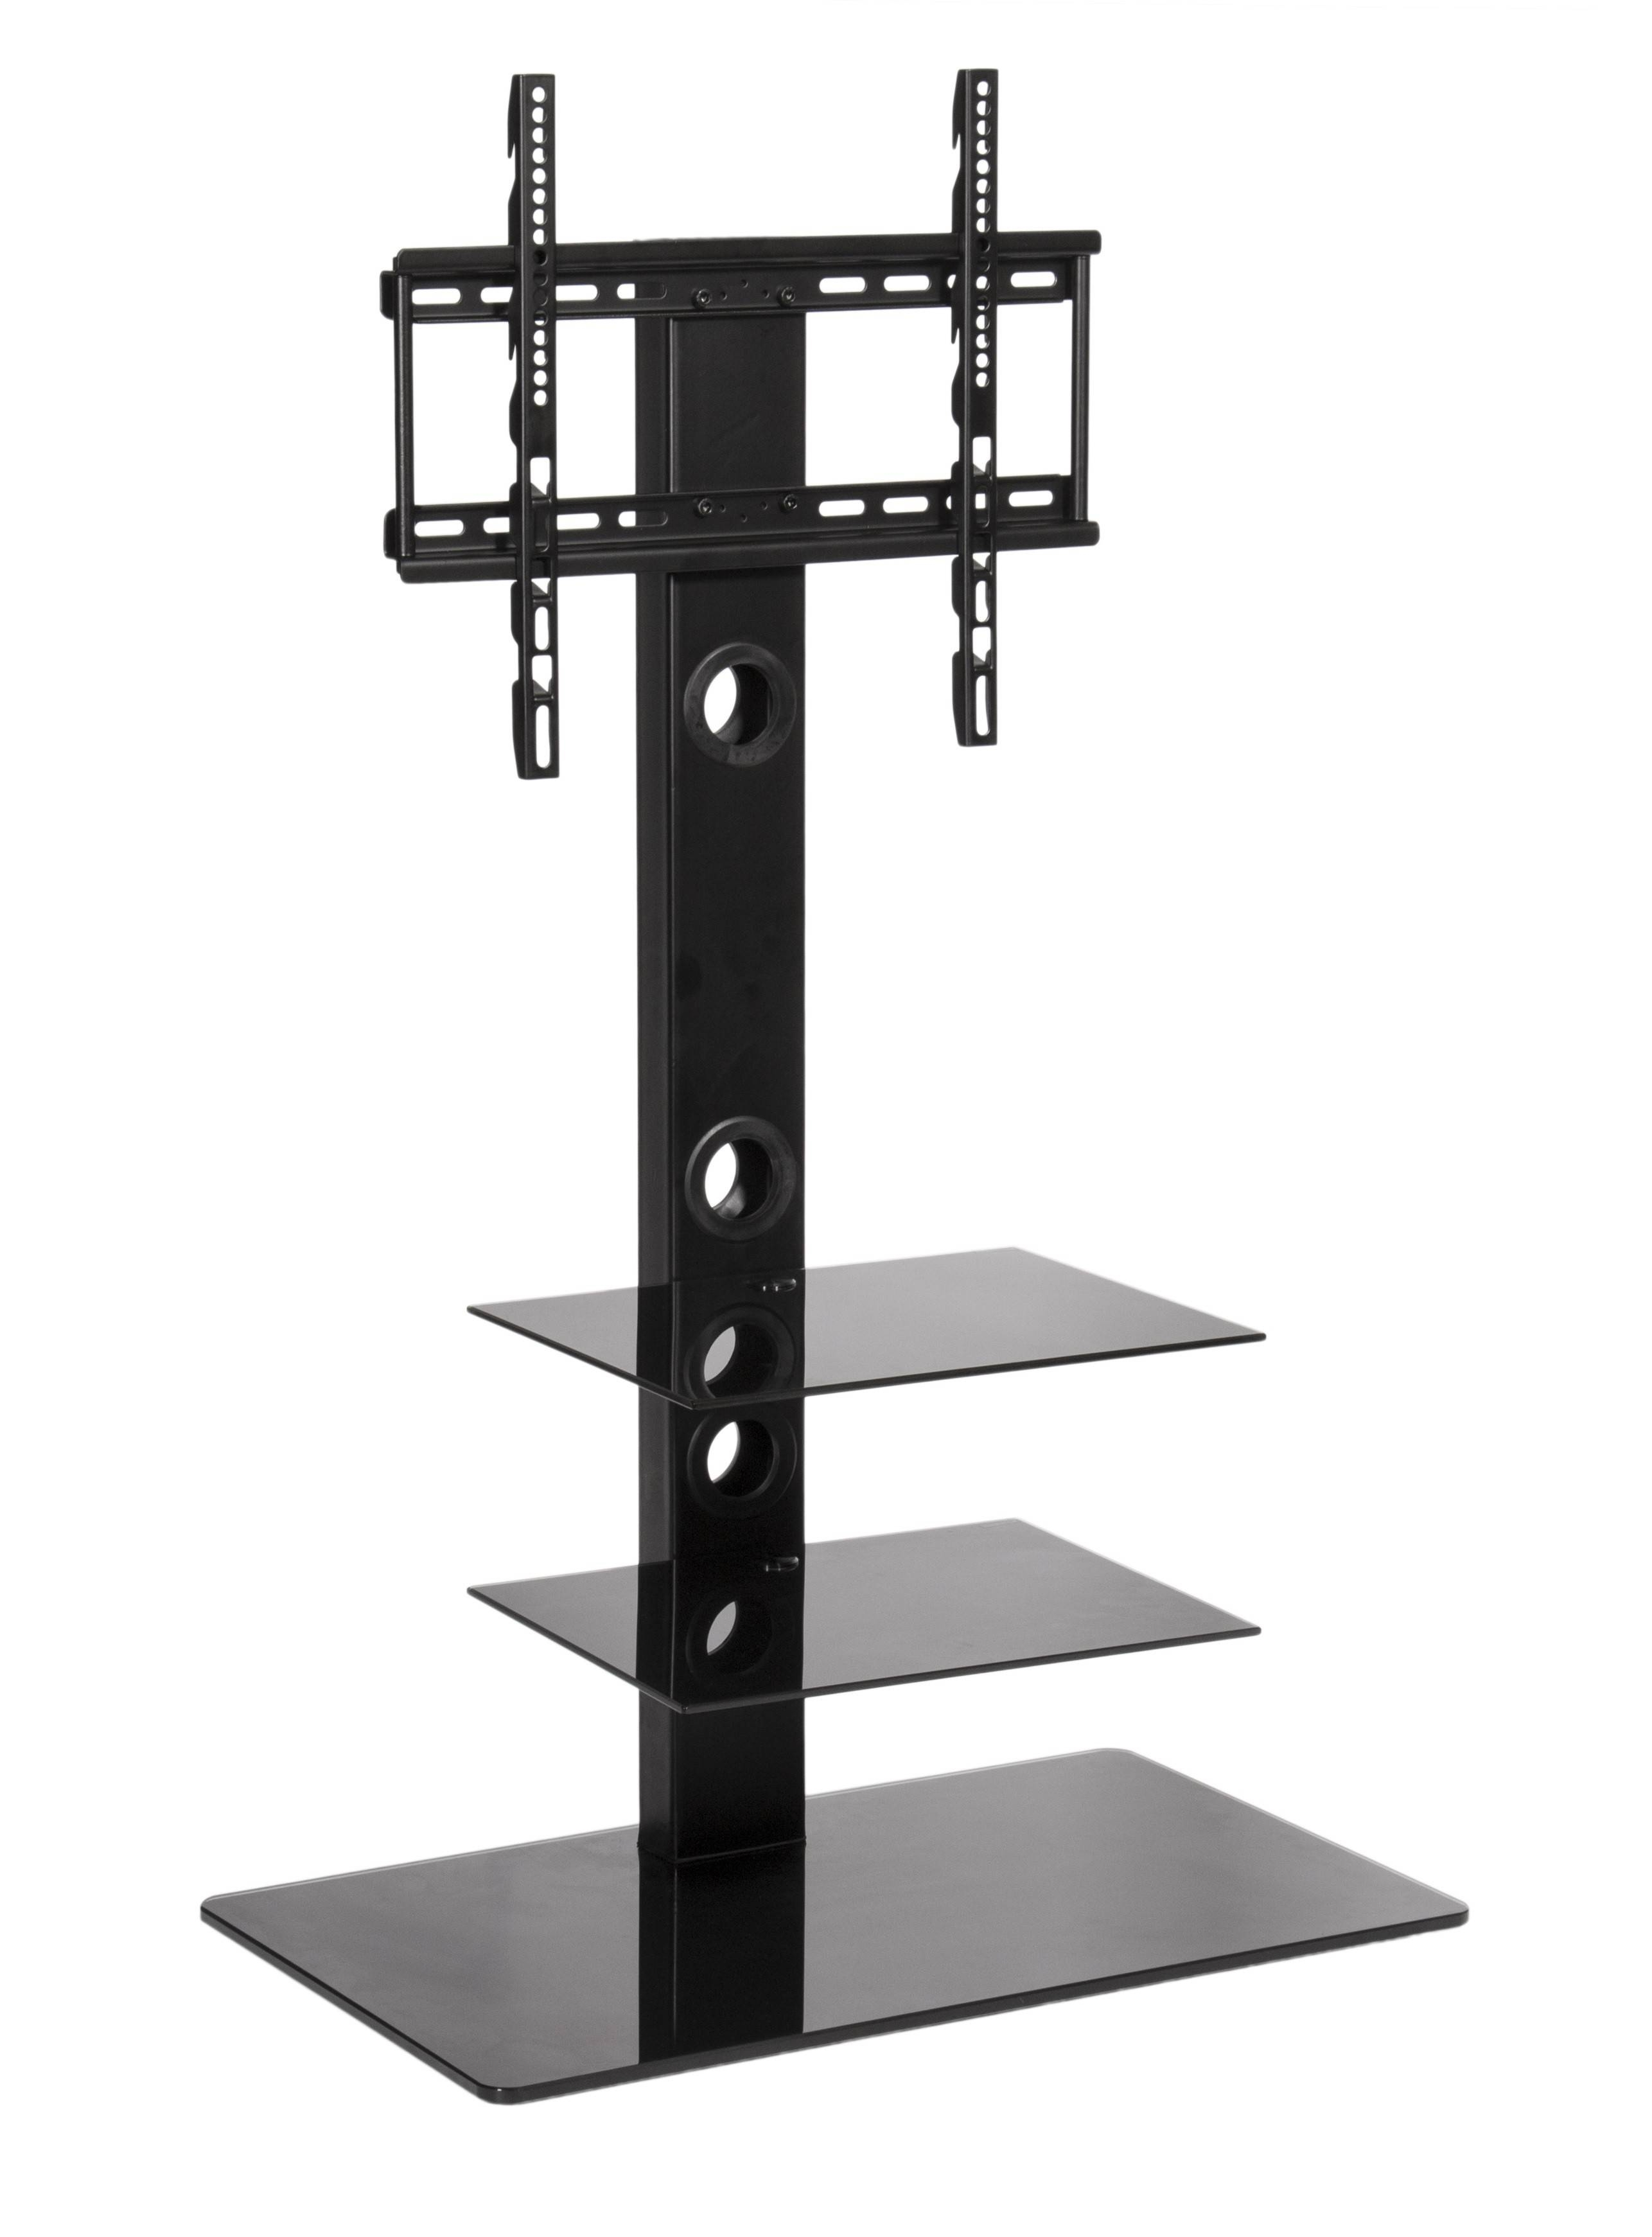 Black Glass Cantilever Tv Stand | Mmt Cbm3 For Cantilever Tv Stands (View 8 of 15)